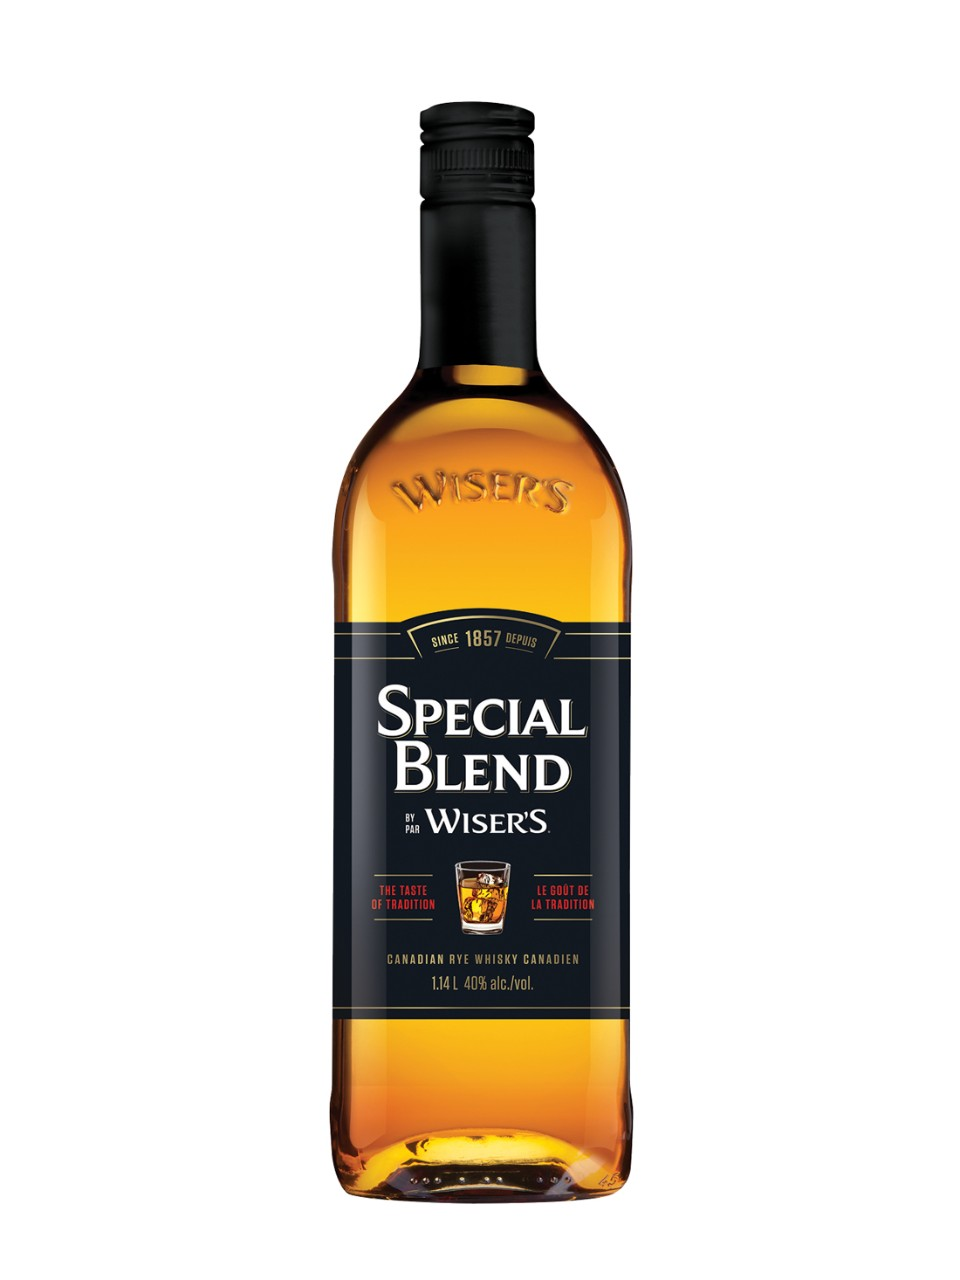 Whisky Wisers Special Blend